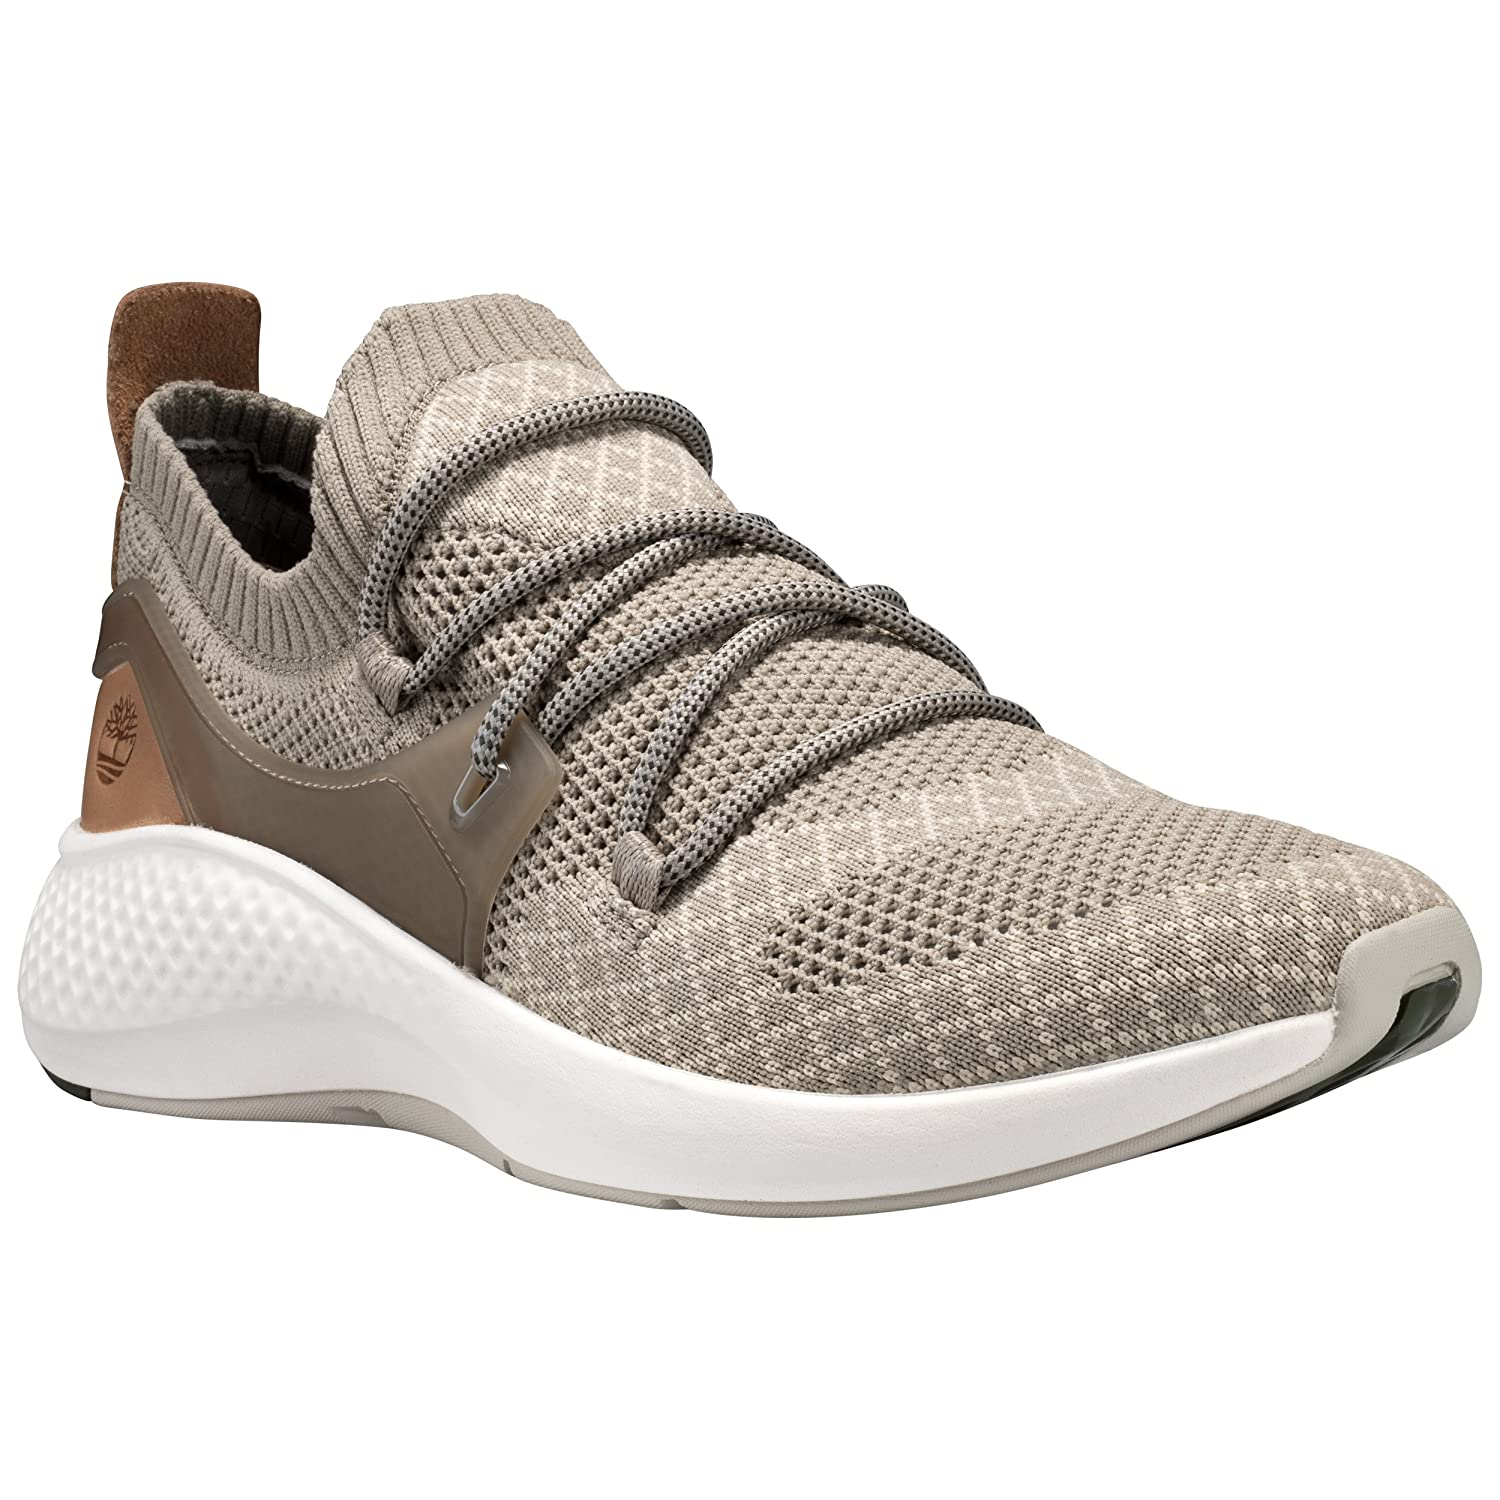 4977fd386a3 Amazon.com | Timberland Men's Flyroam Go Knit Sneakers Size 8.5 ...